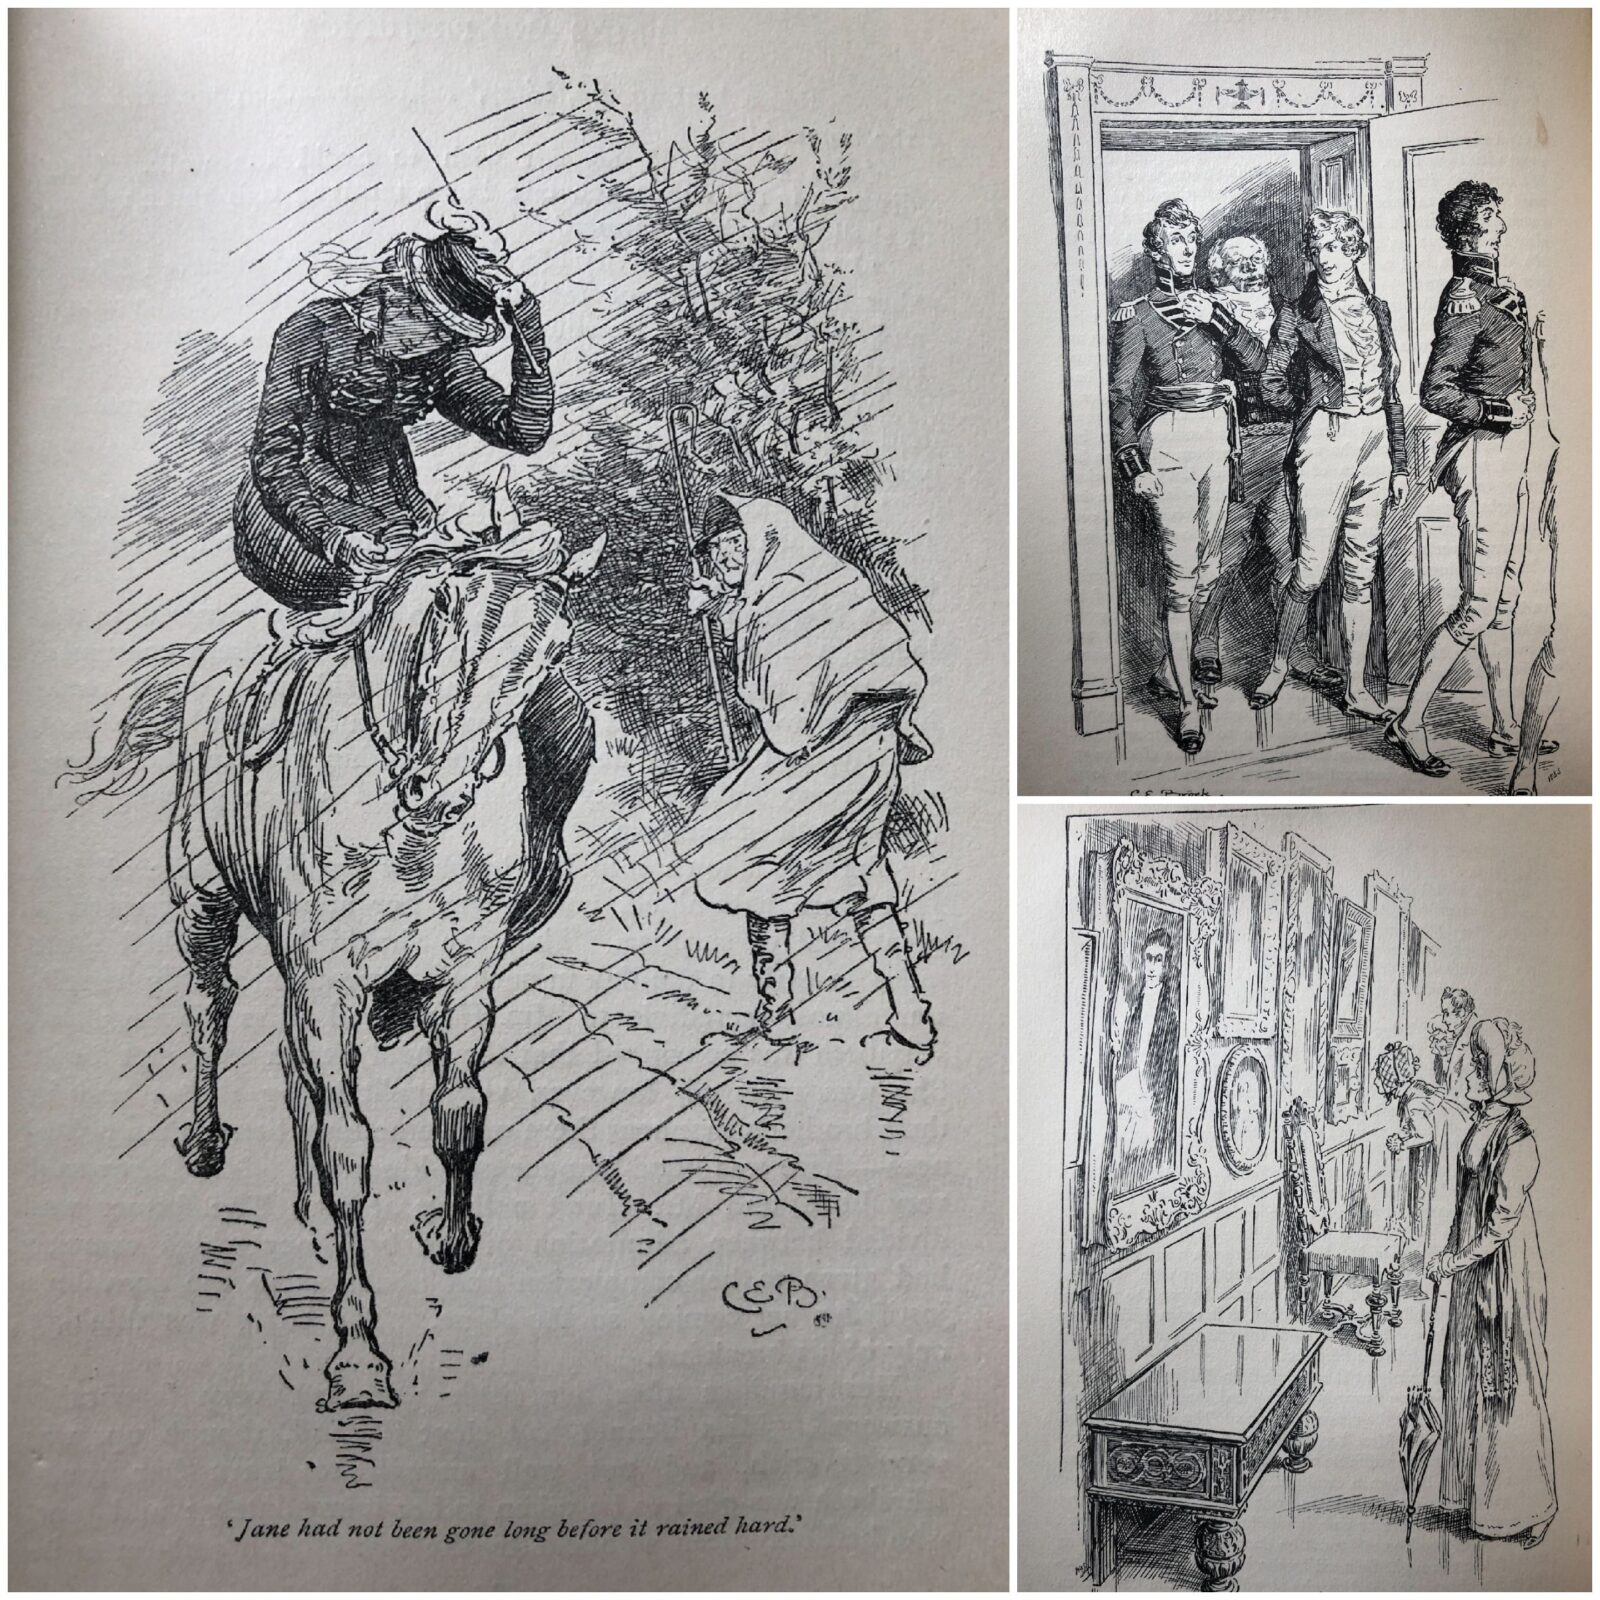 Compilation of images from Pride & Prejudice, illustrated by Charles E. Brock 1895